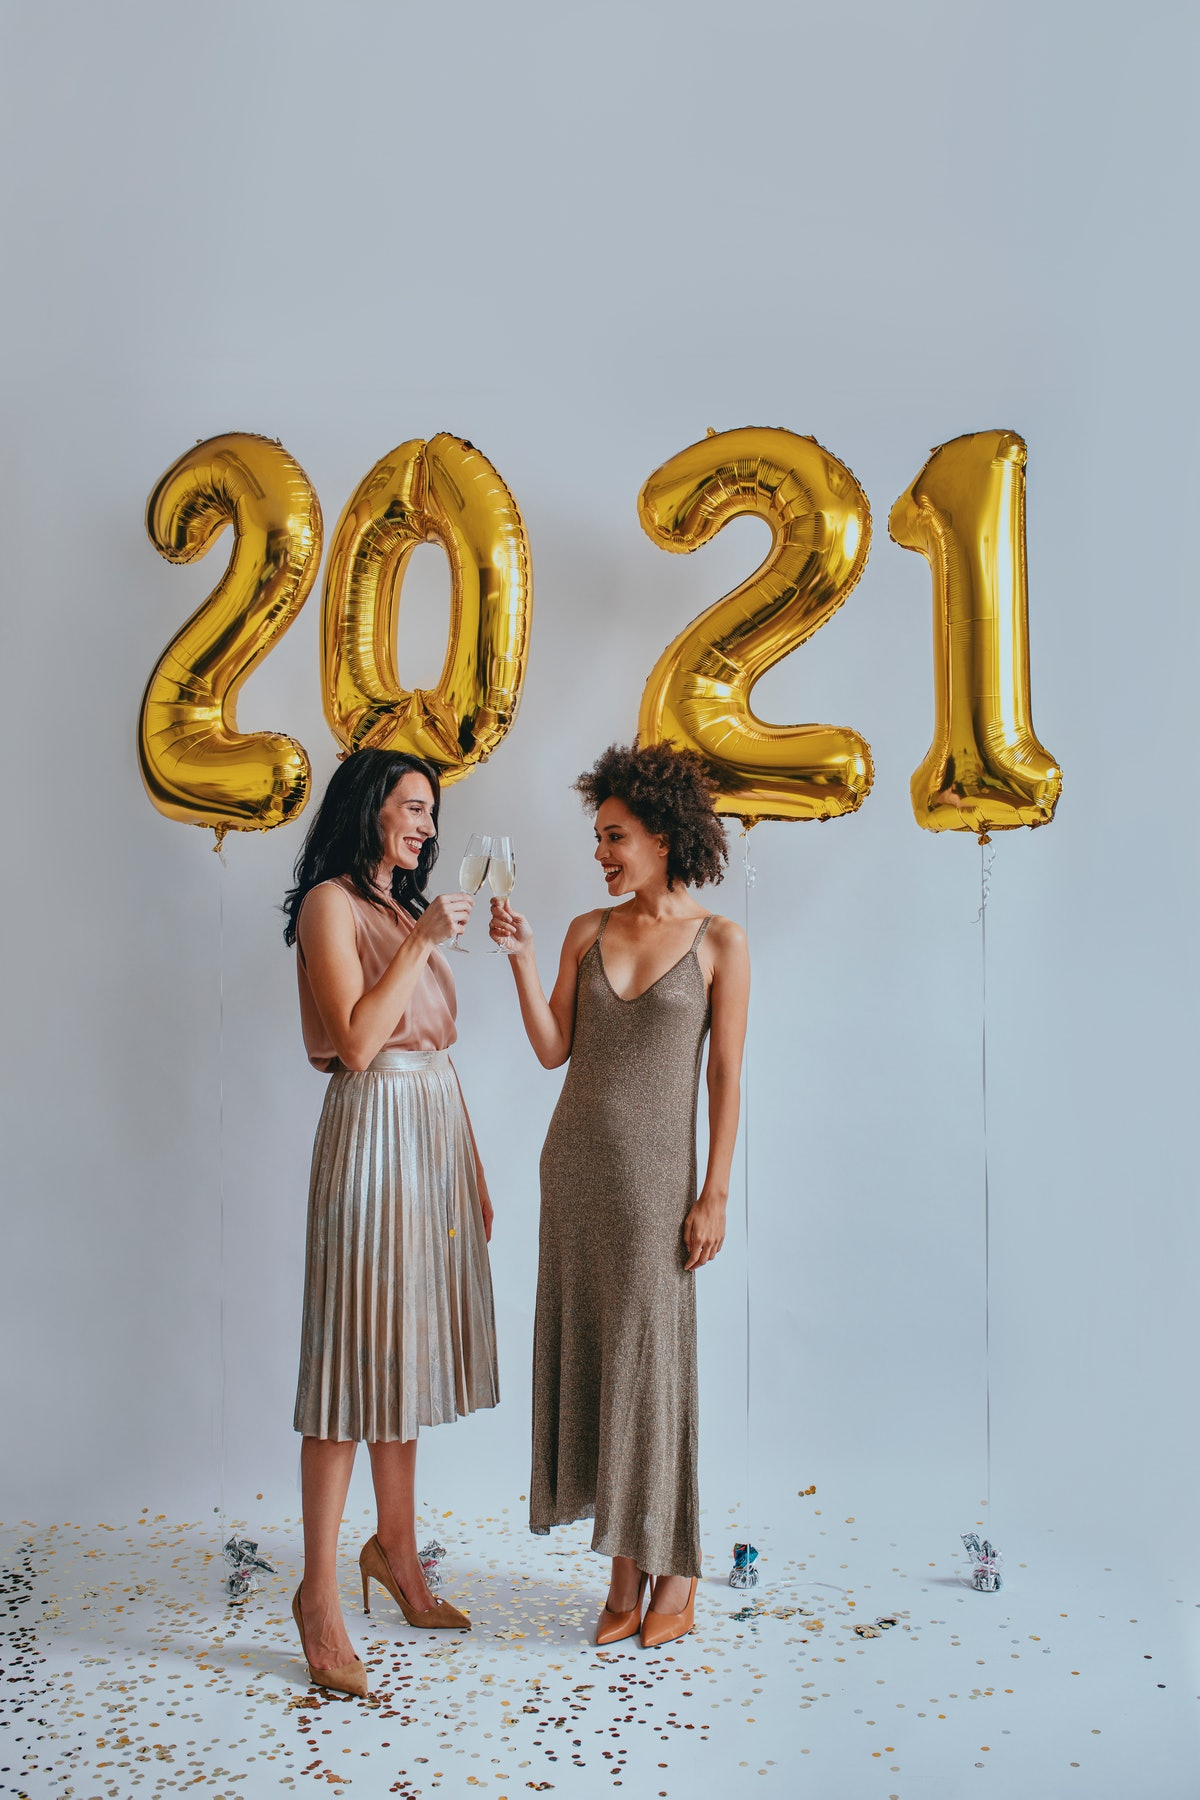 Two friends clink their glasses while standing next to gold, 2021 balloons on New Year's Eve.